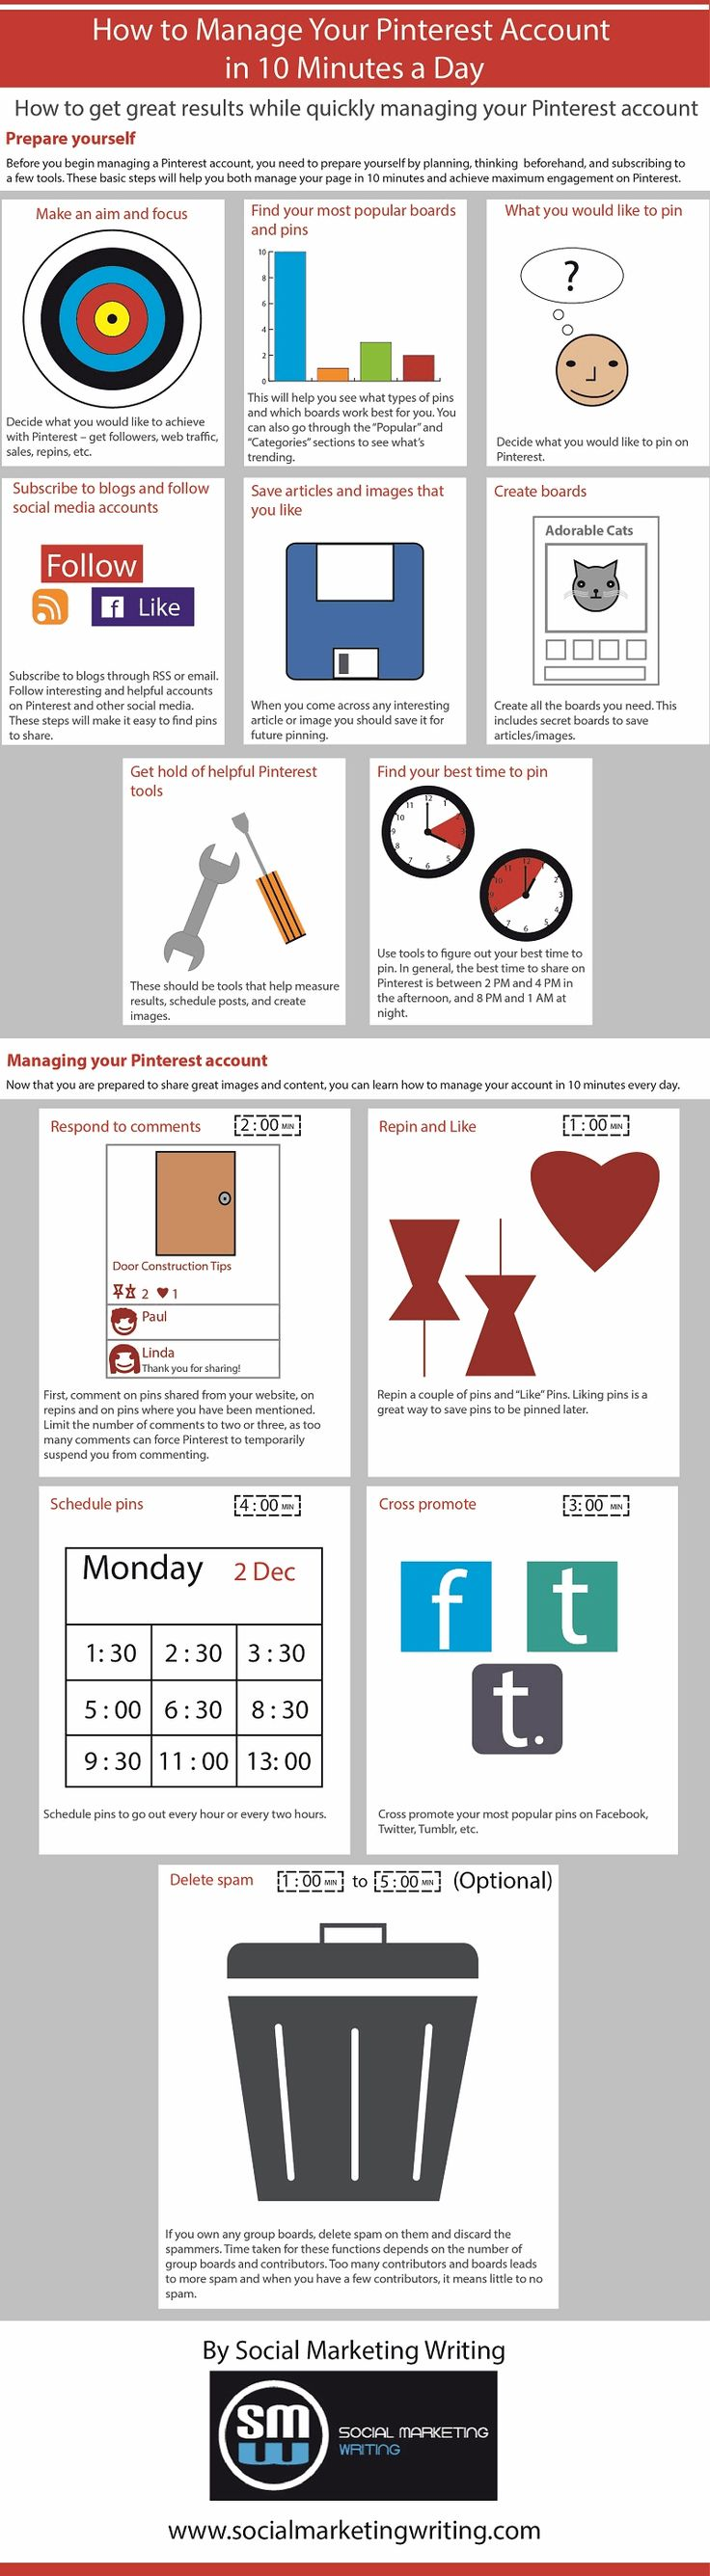 Manage your Pinterest account in 10 minutes a day